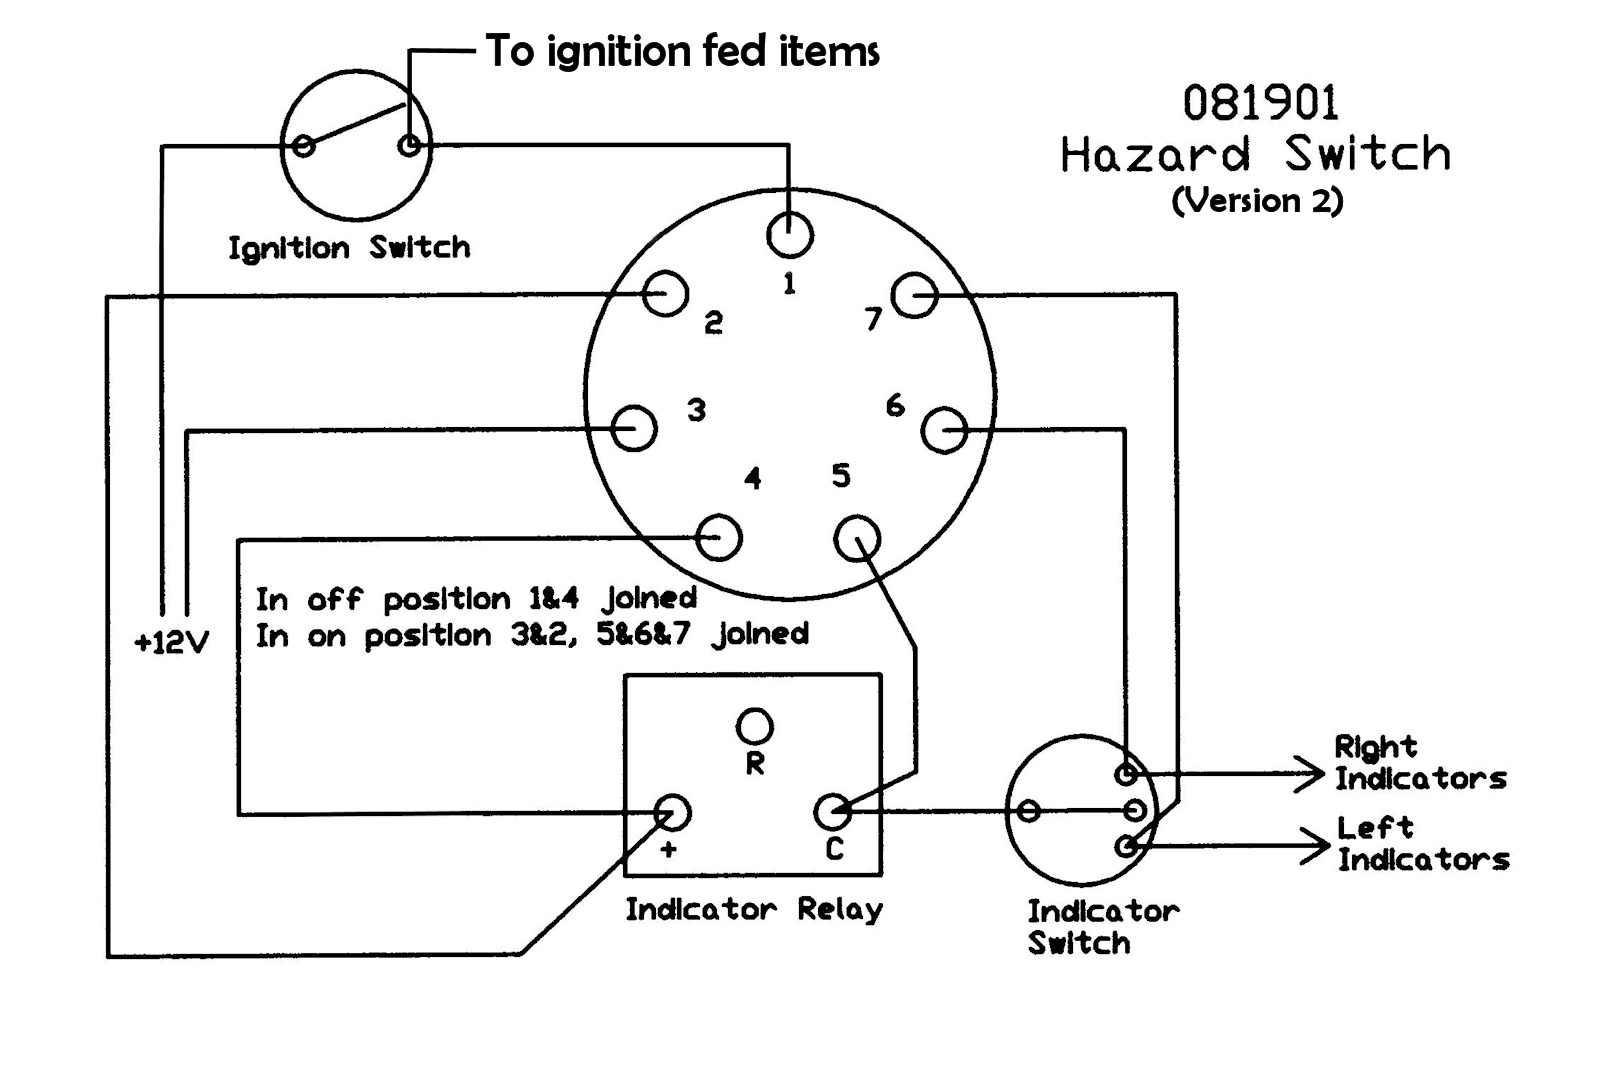 081901_wiring_diagram_v2 panel mounted push on hazard switch hazard relay wiring diagram at n-0.co